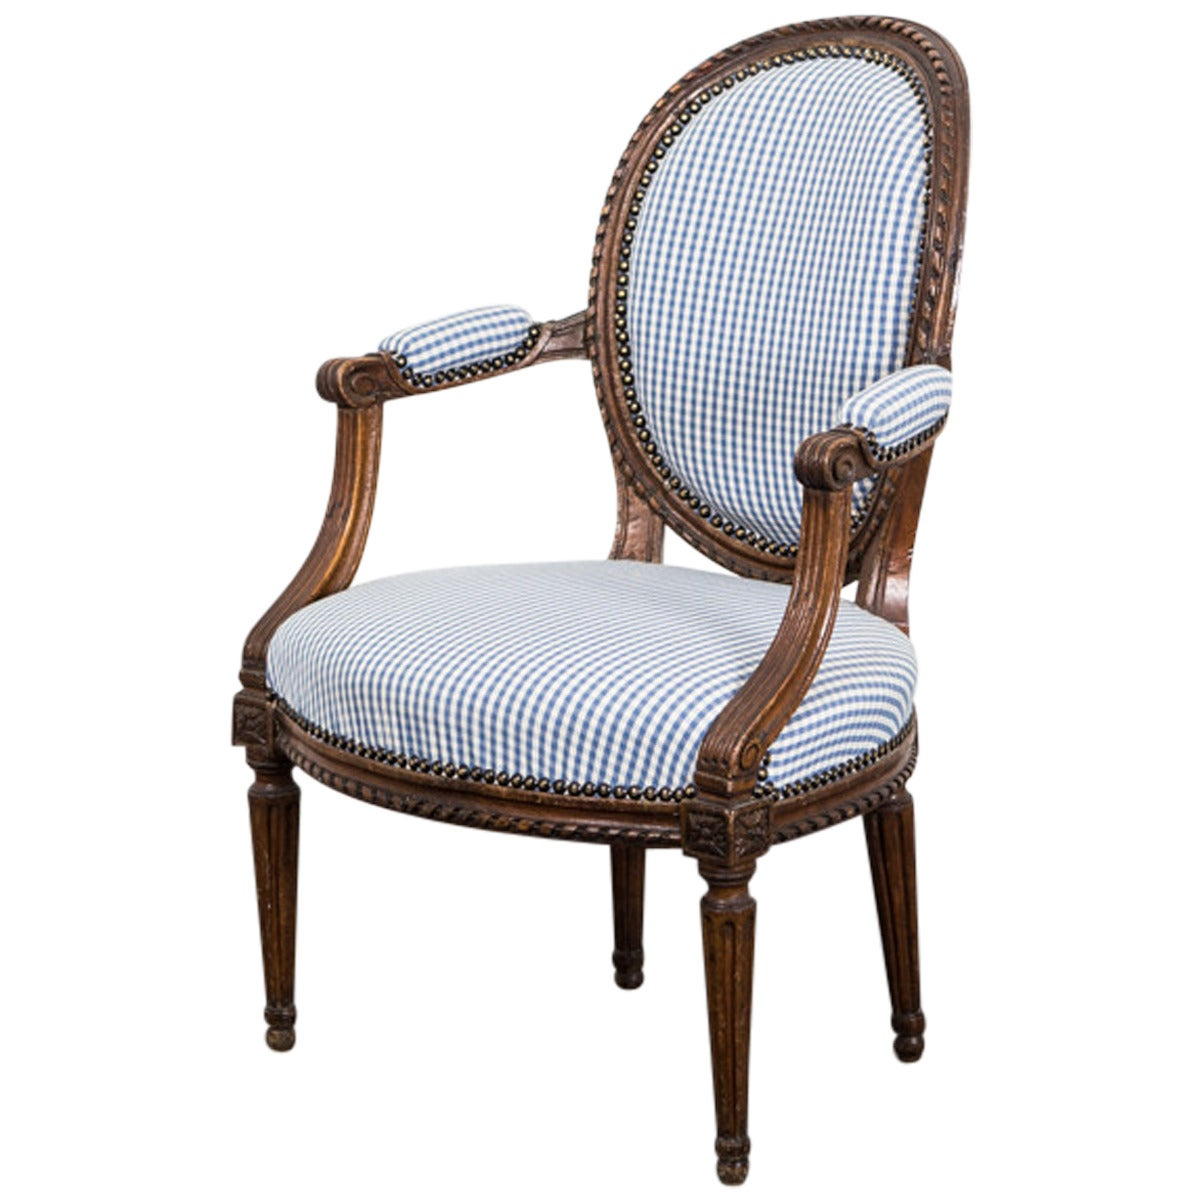 arm chairs for sale tranquil ease massage chair parts armchair louis xvi france at 1stdibs